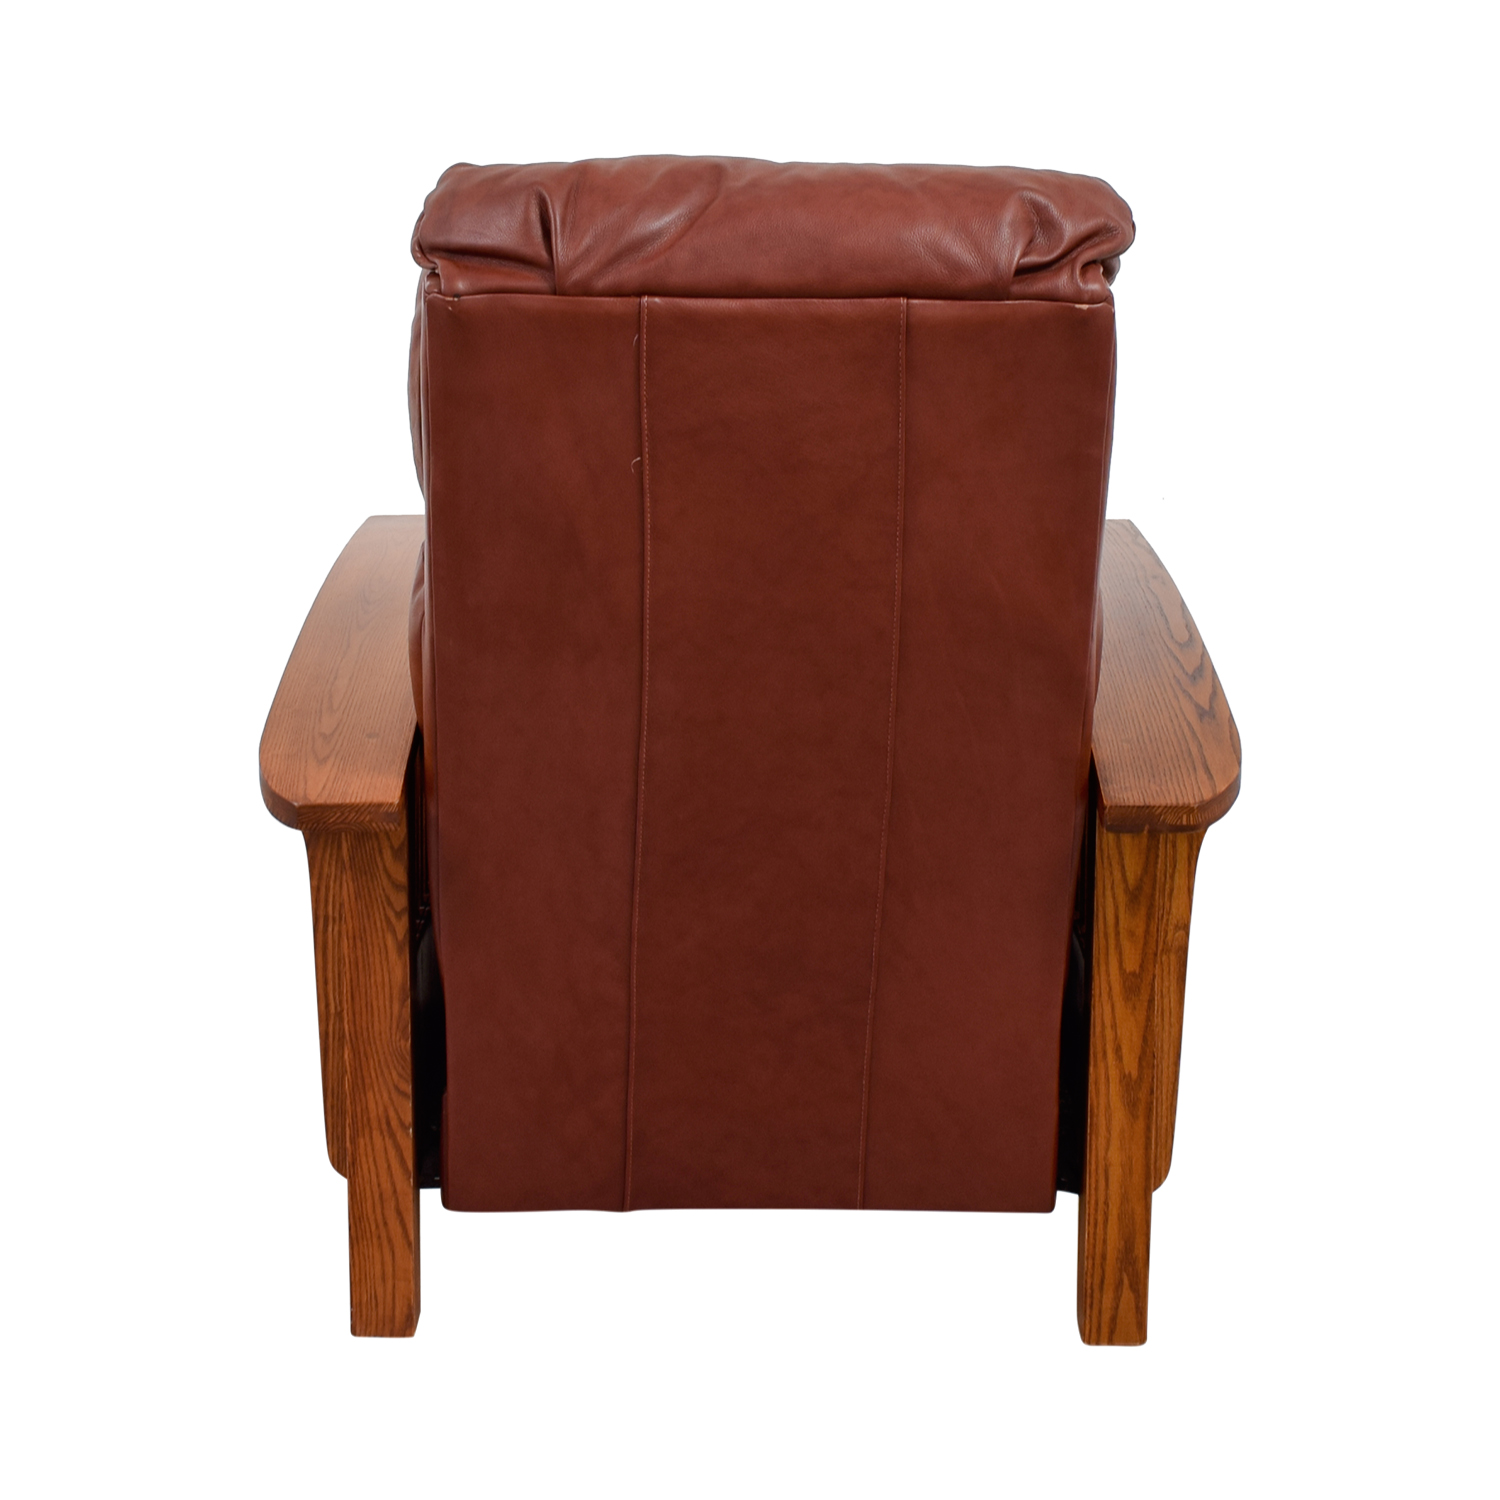 Macy's Brown Leather and Wood Recliner sale